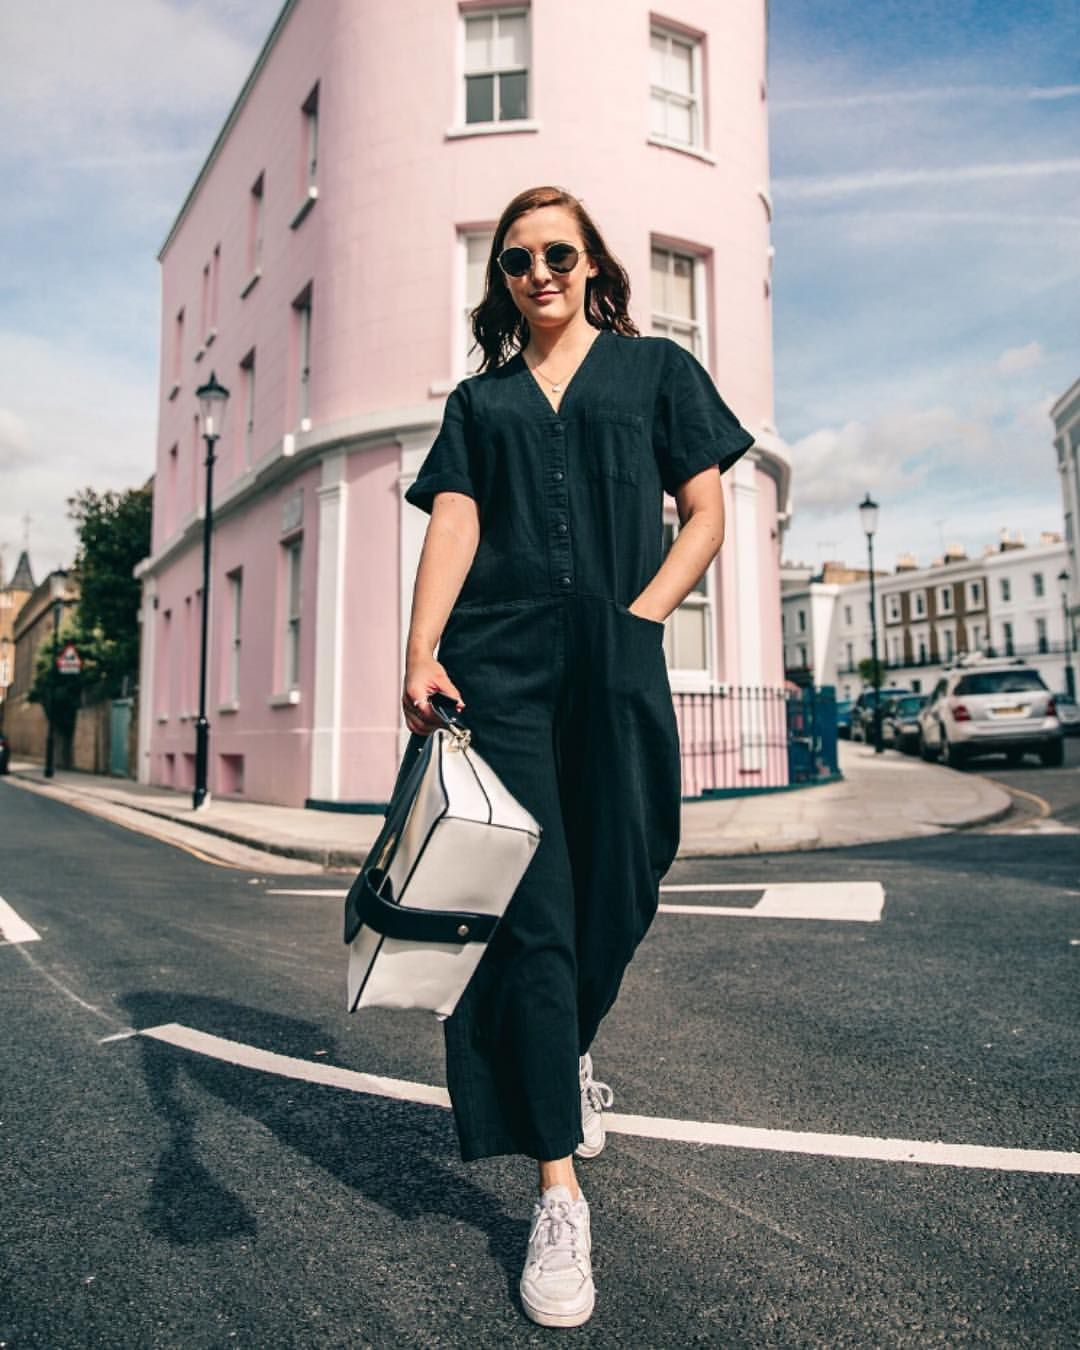 9dcdef1ad4c Lauren Rose 🌹 Street Style London Pink House Building Instagram Fashion  Blogger Outfit - wearing Monki jumpsuit ✨